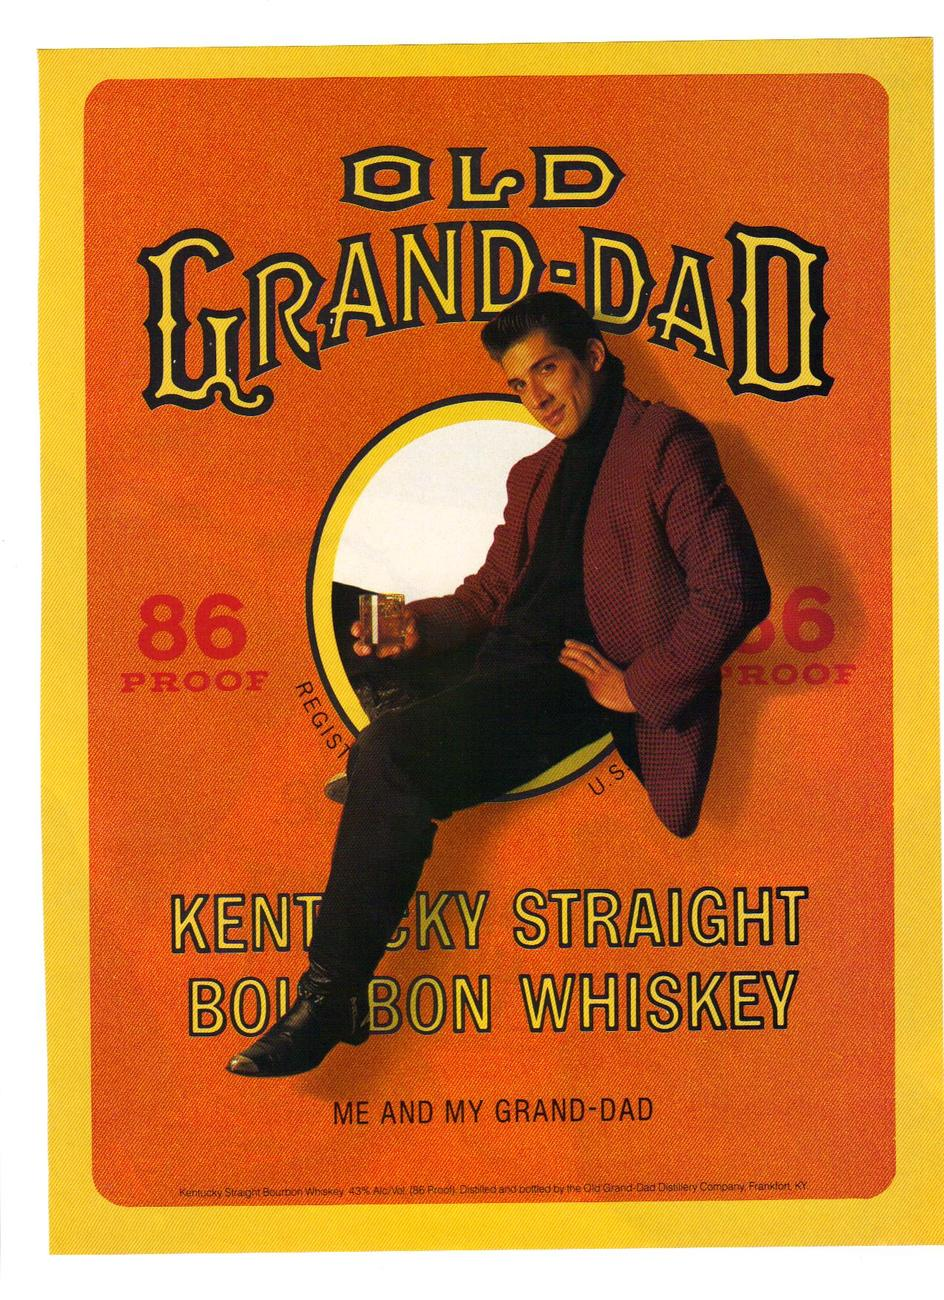 Old Grand Dad, Kentucky straight bourbon 1988 ad.